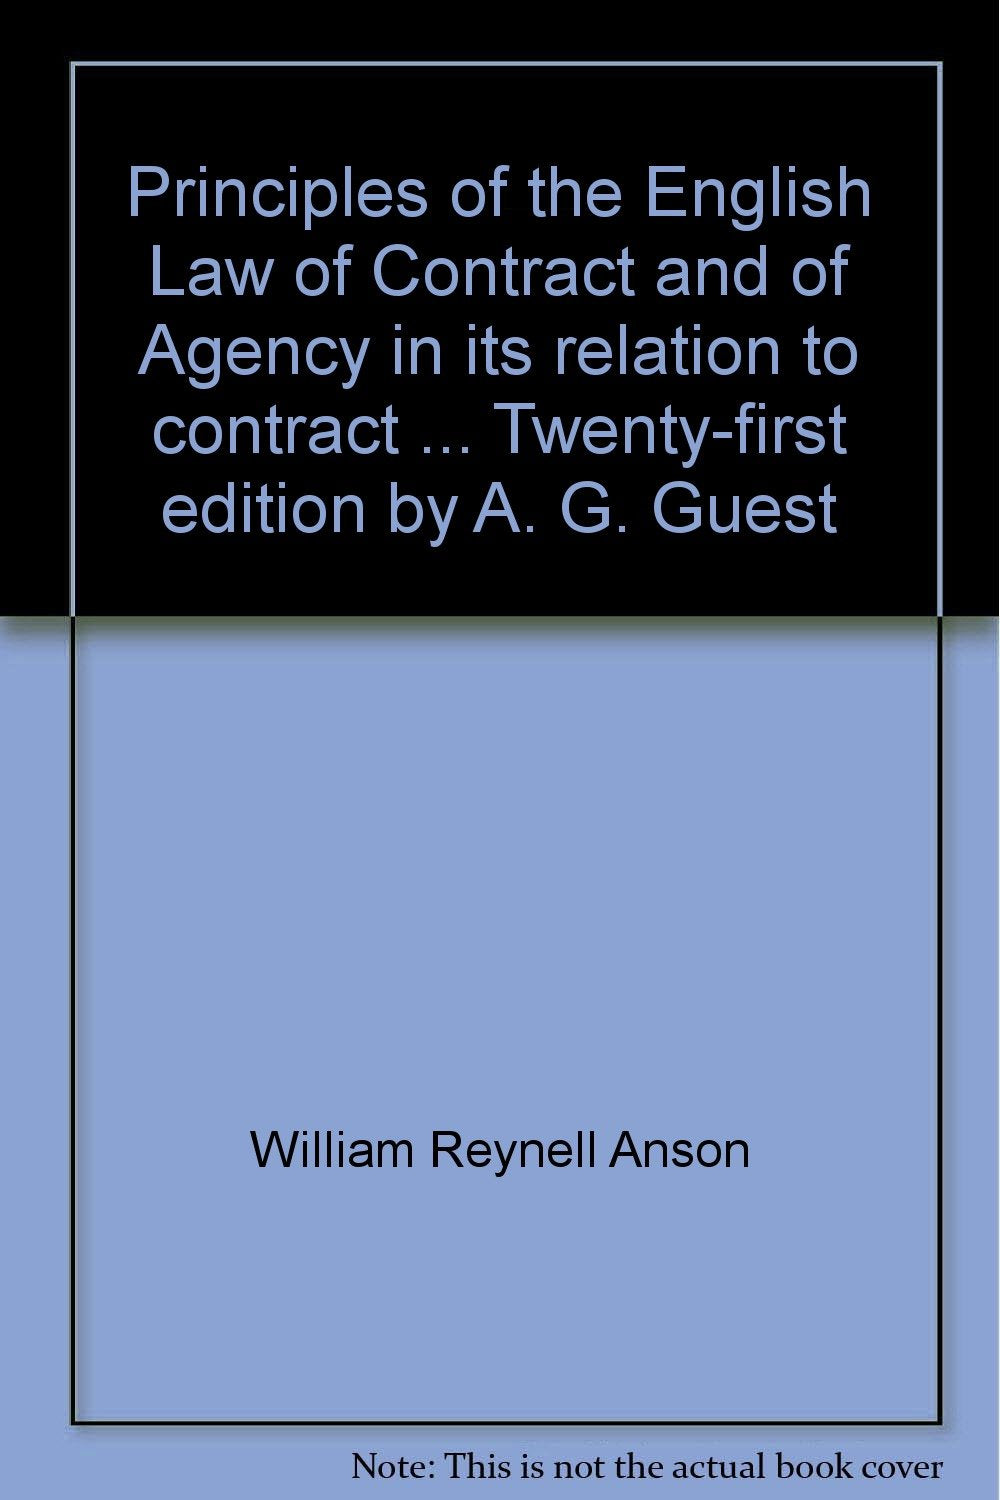 Principles of the English Law of Contract and of Agency in its relation to contract ... Twenty-first edition by A. G. Guest [Unknown Binding] William Reynell Anson and Anthony Gordon Guest